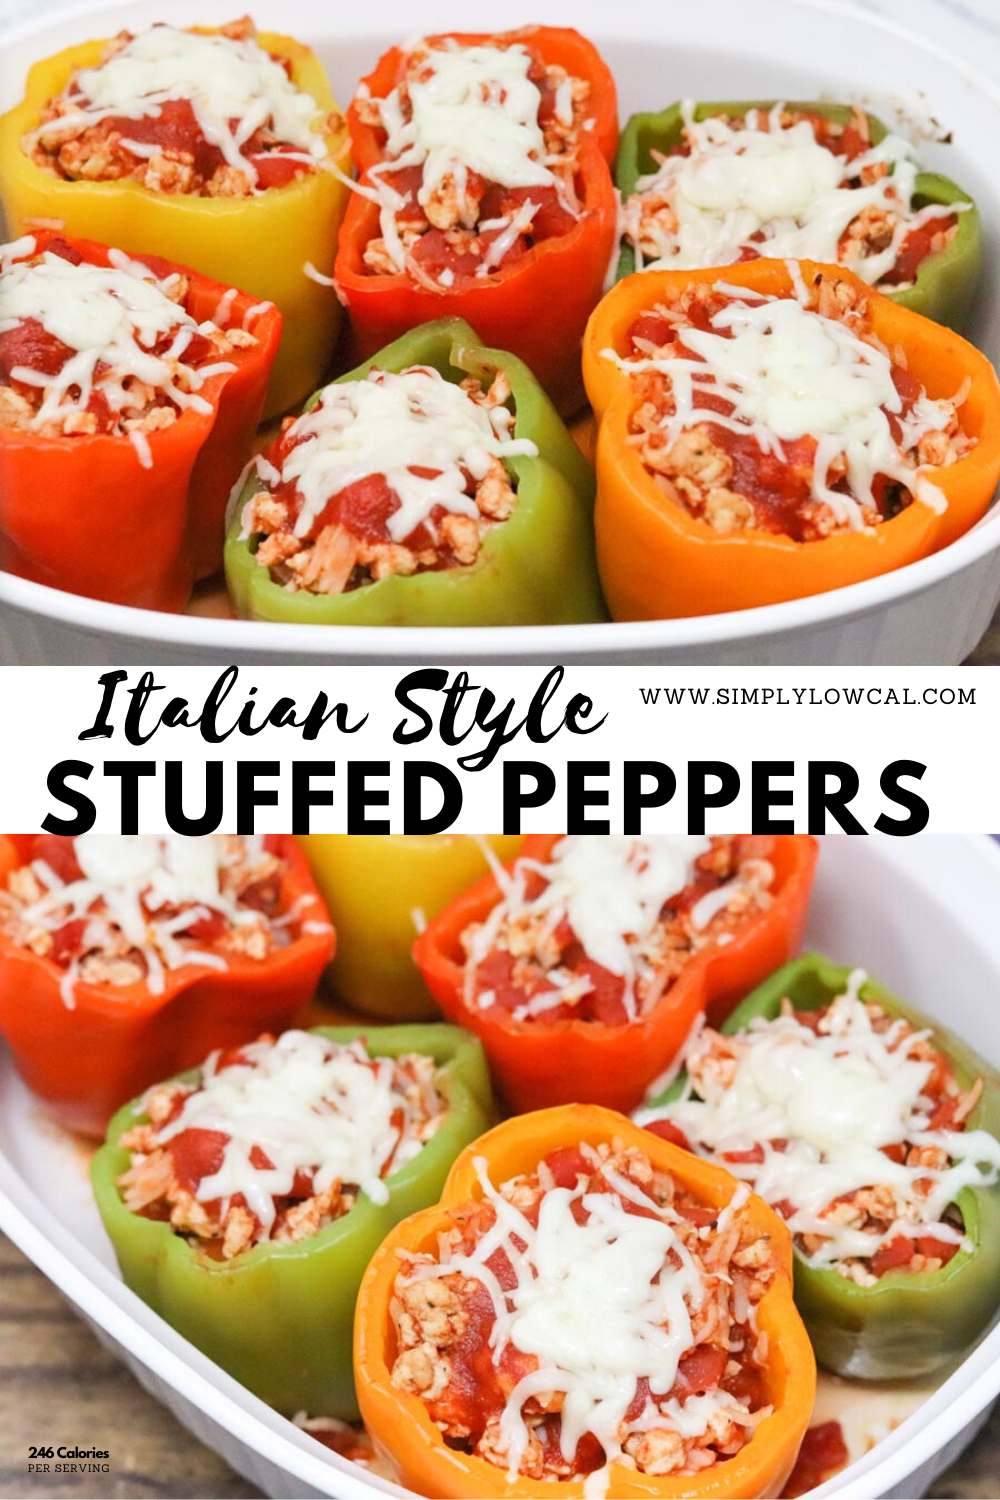 Italian Style Stuffed Peppers Recipe In 2020 Stuffed Peppers Recipes Dinner